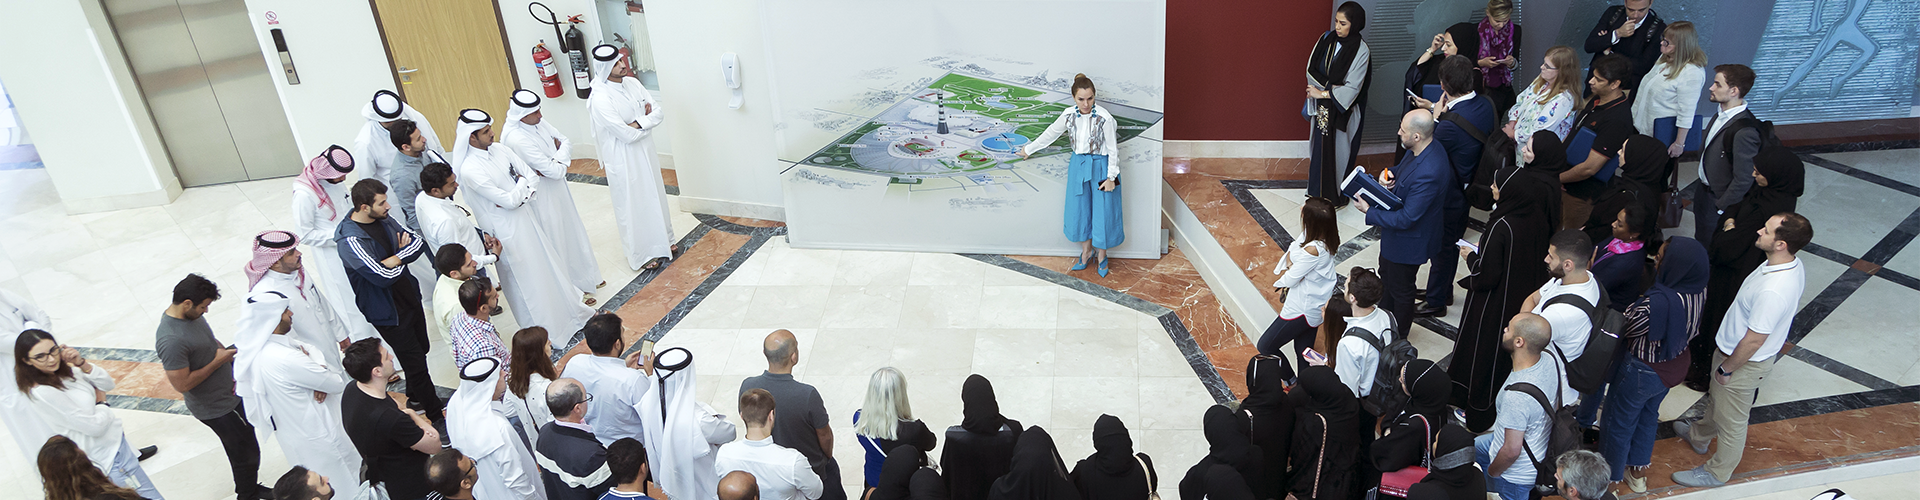 A group of people watching a presenter at an exhibition